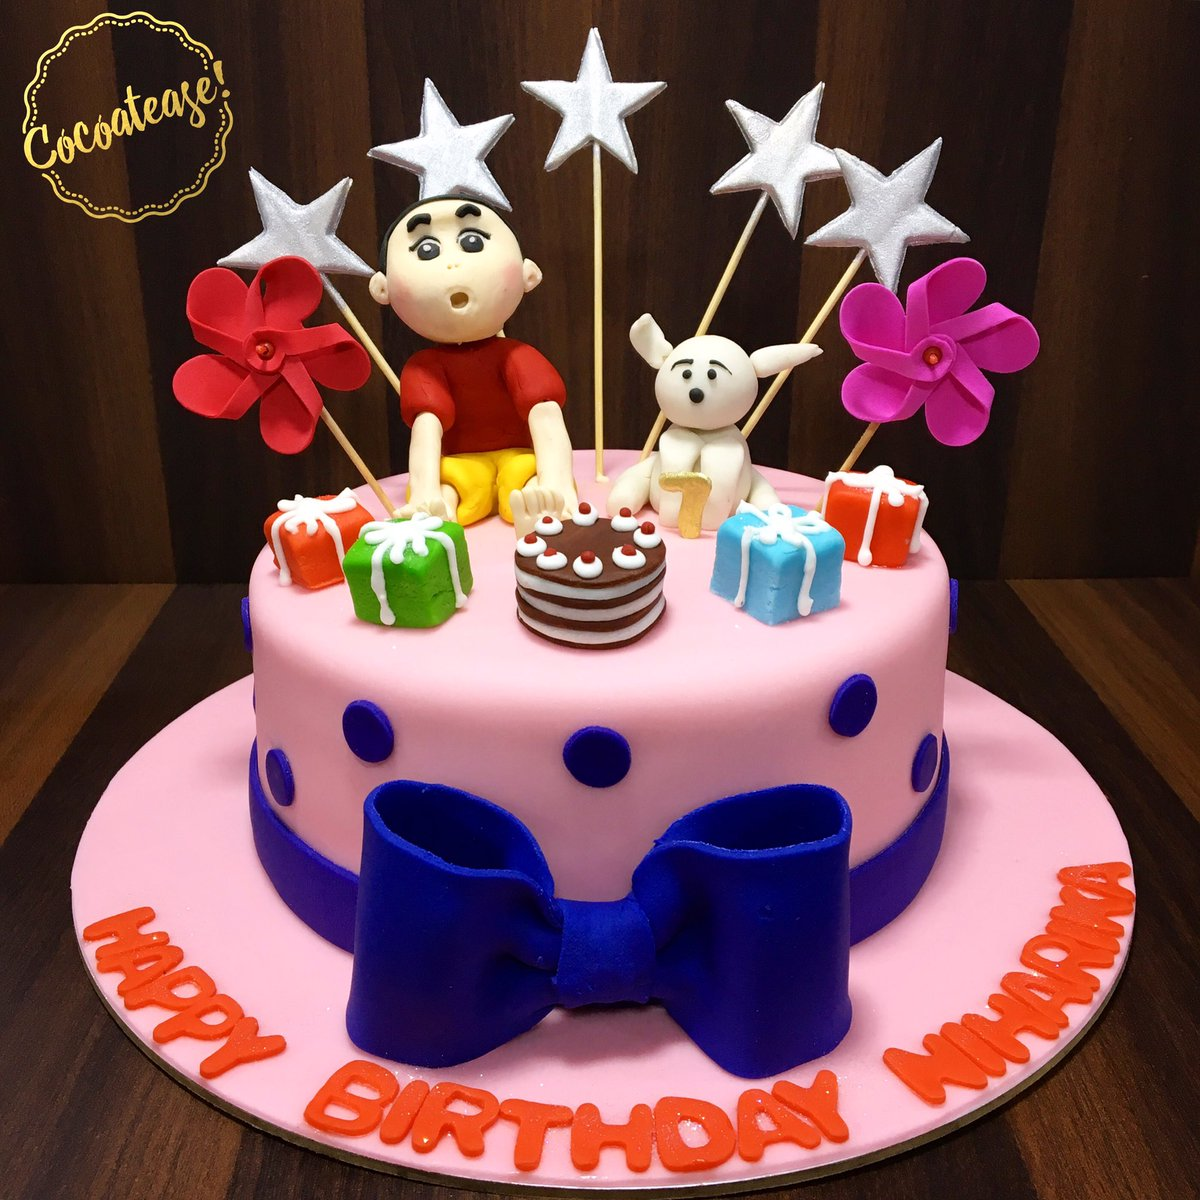 Cocoatease On Twitter Create Your Own Lil Chaos And Enjoy ThatAn Adorable Shin Chan Themed Gooey Chocolate Birthday Cake